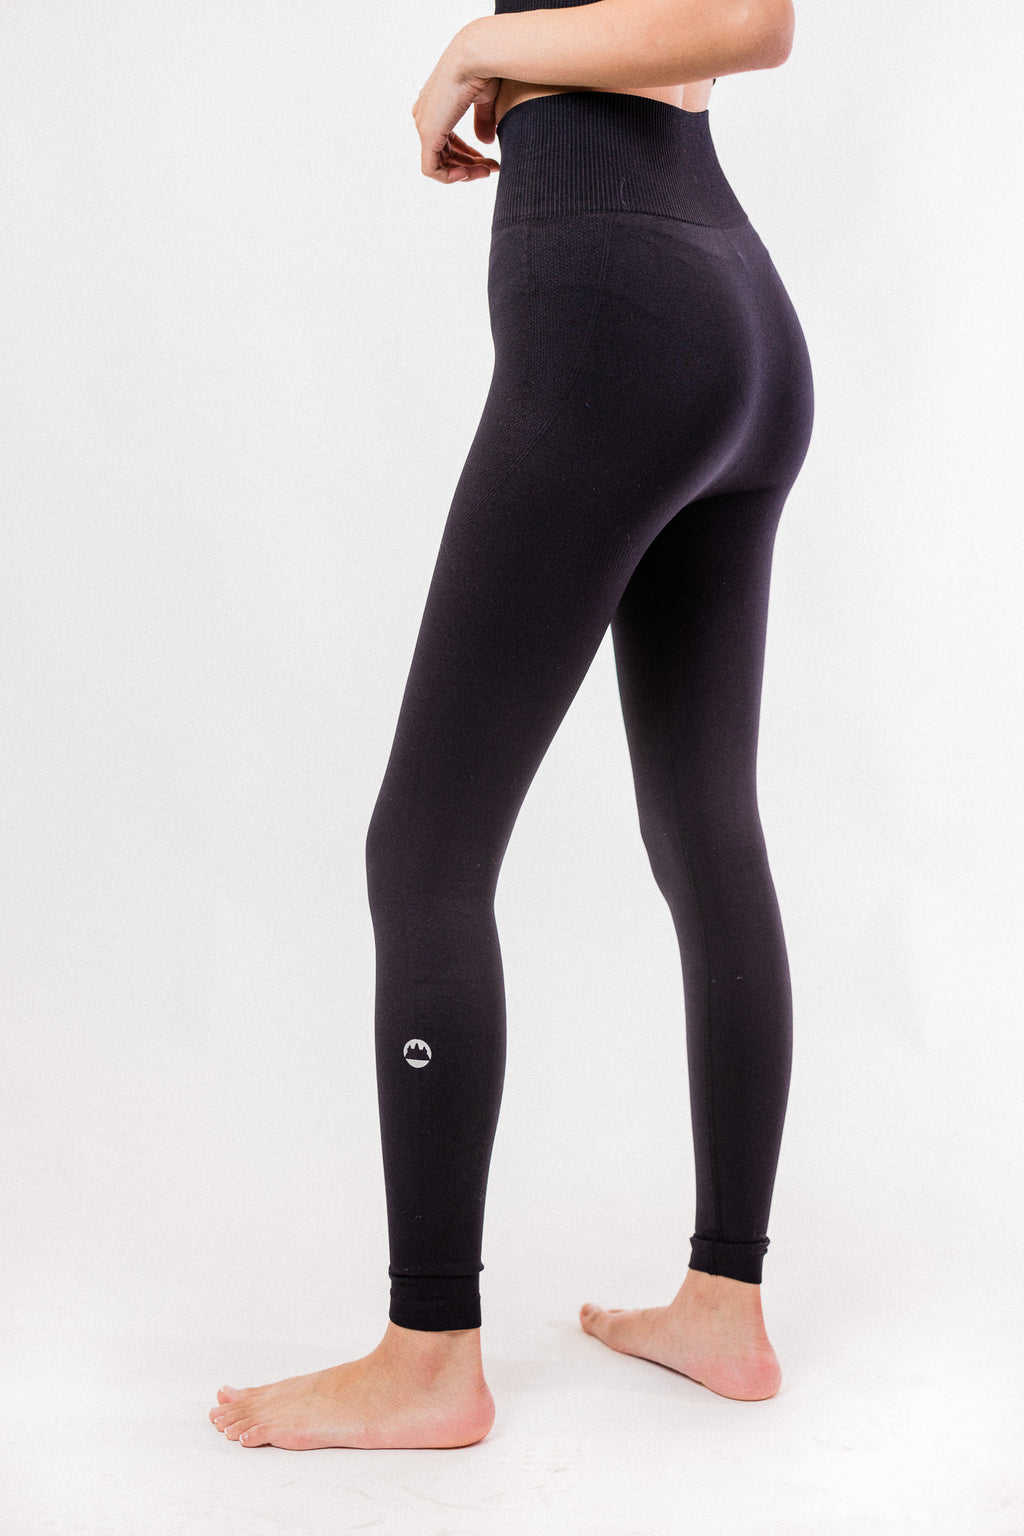 Angkor High-Rise Compression Workout Yoga Pant